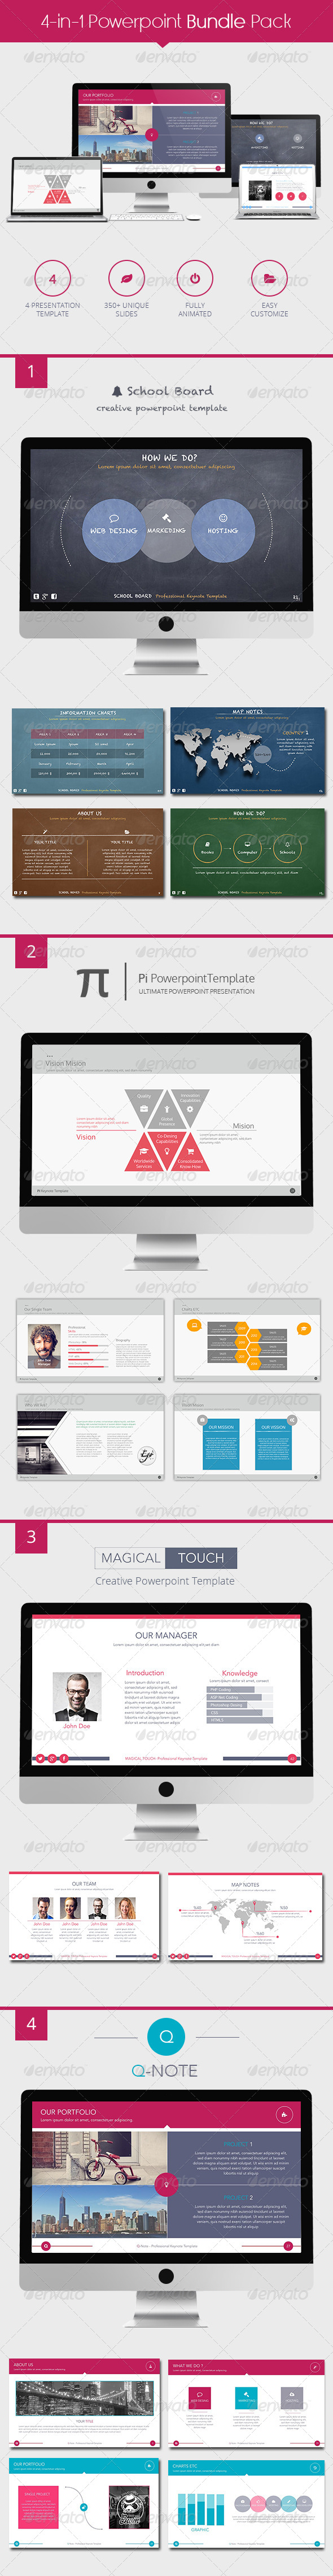 GraphicRiver 4in1 Powerpoint Bundle 8622594